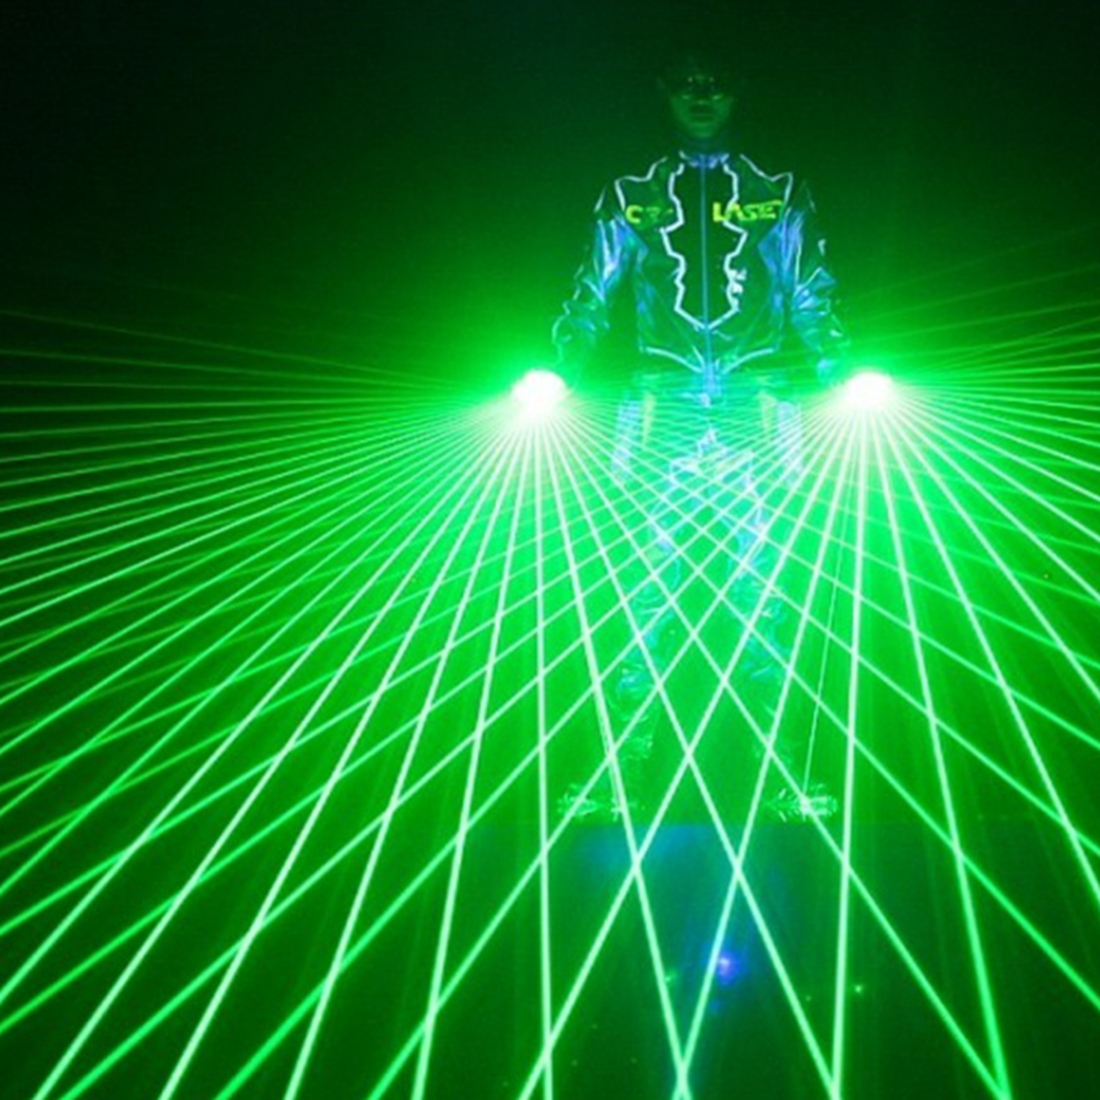 1Pcs Super Cool Green Laser Gloves Dancing Stage Show Light With 4 pcs Lasers Luminous Gloves Light for DJ Club Party Bars стоимость